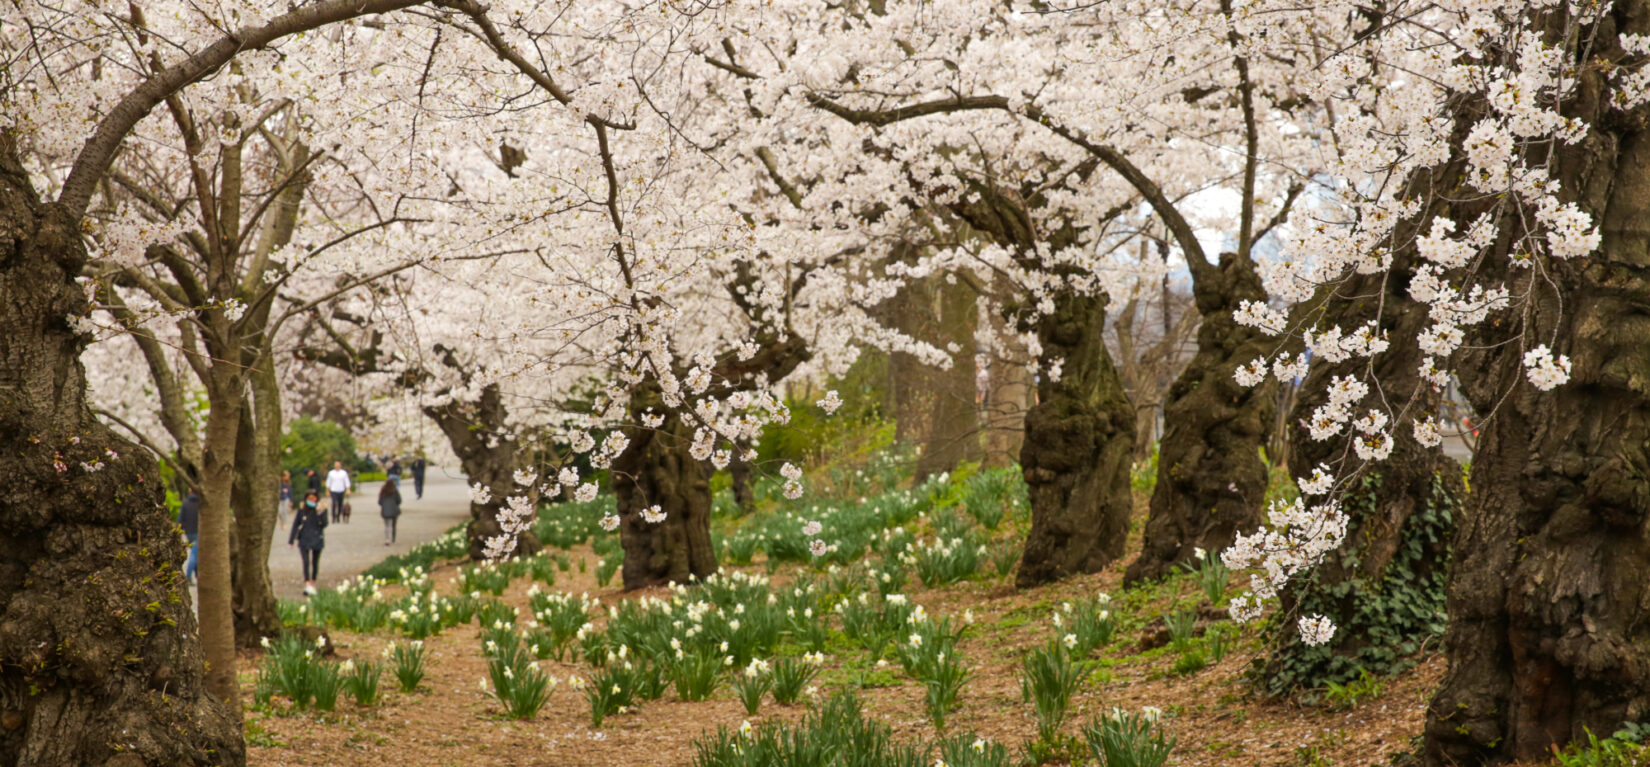 A thick canopy of cherry blossoms runs alongside the bridle path.